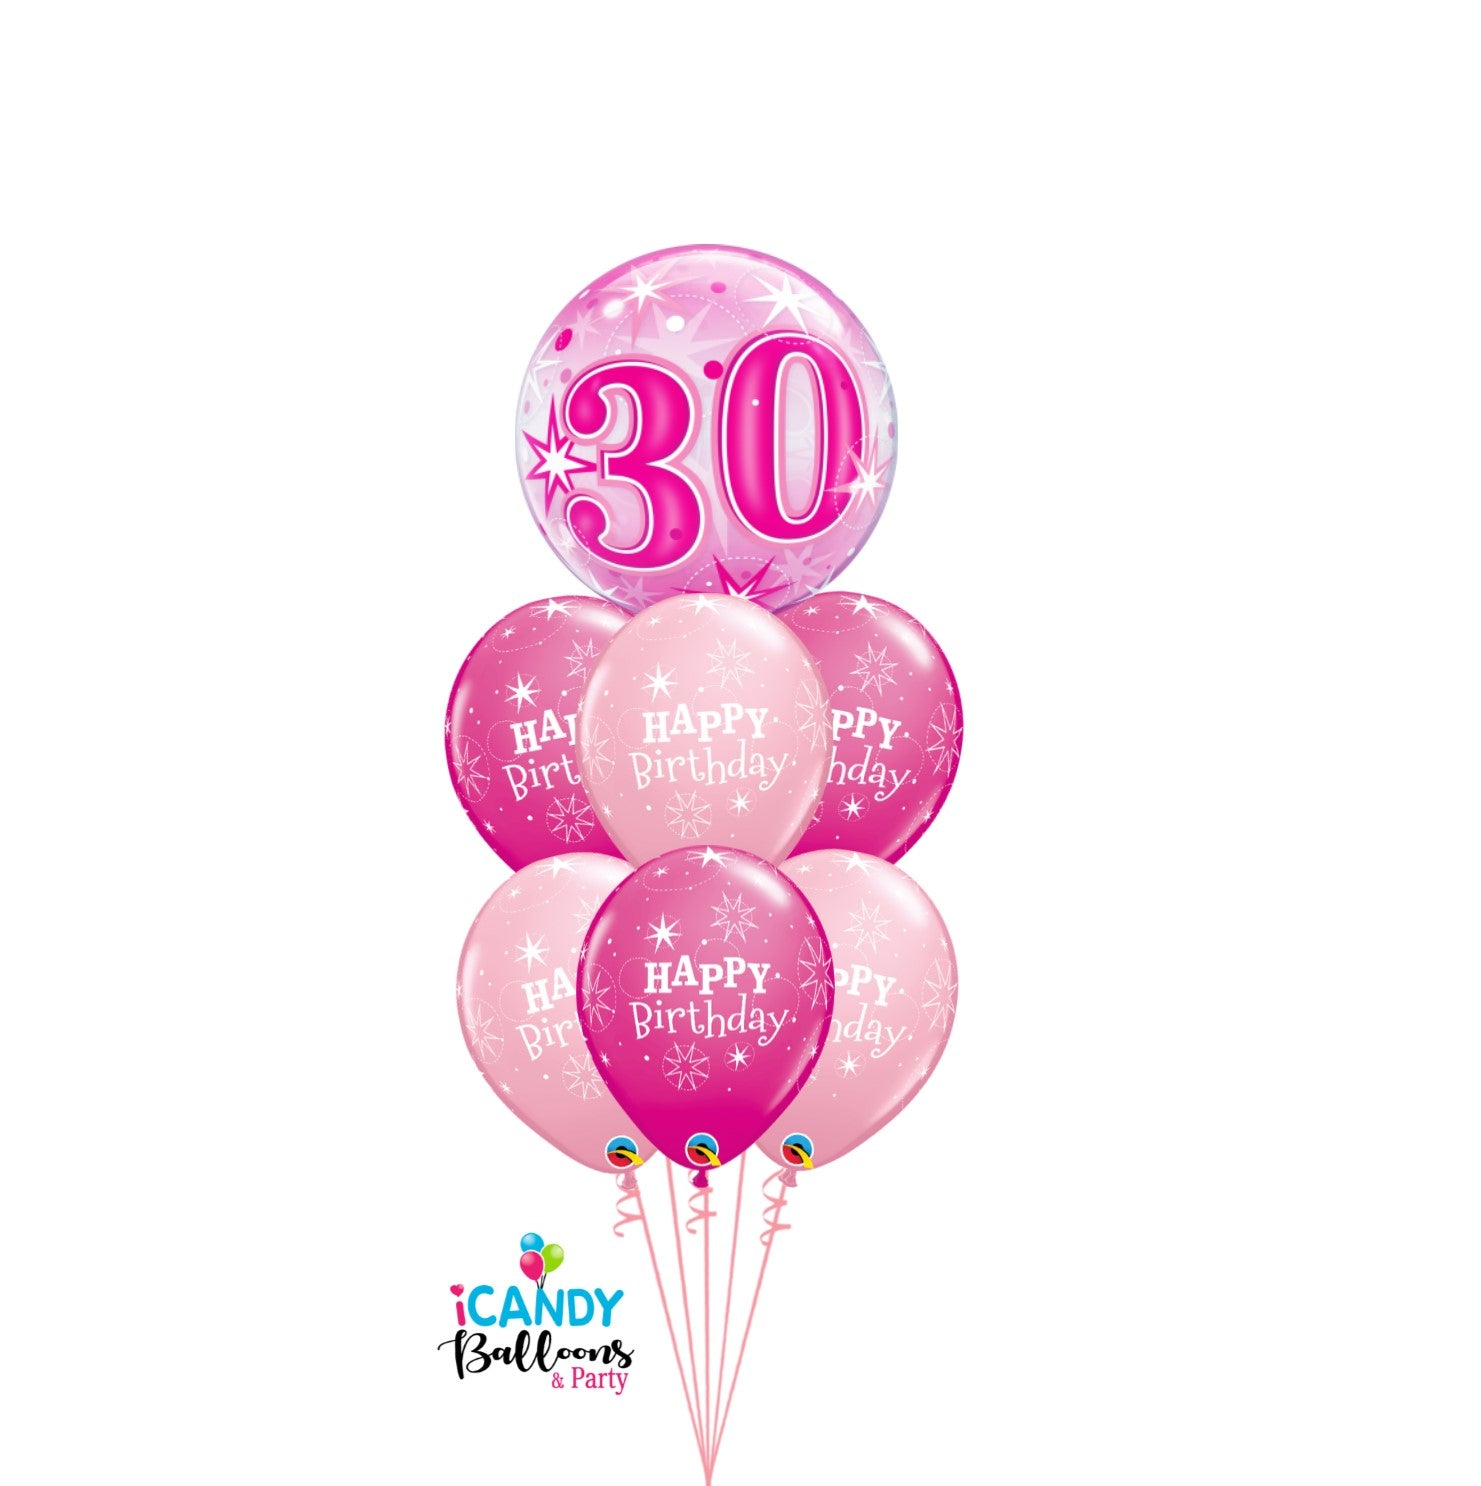 30th Birthday Balloons & Party Supplies